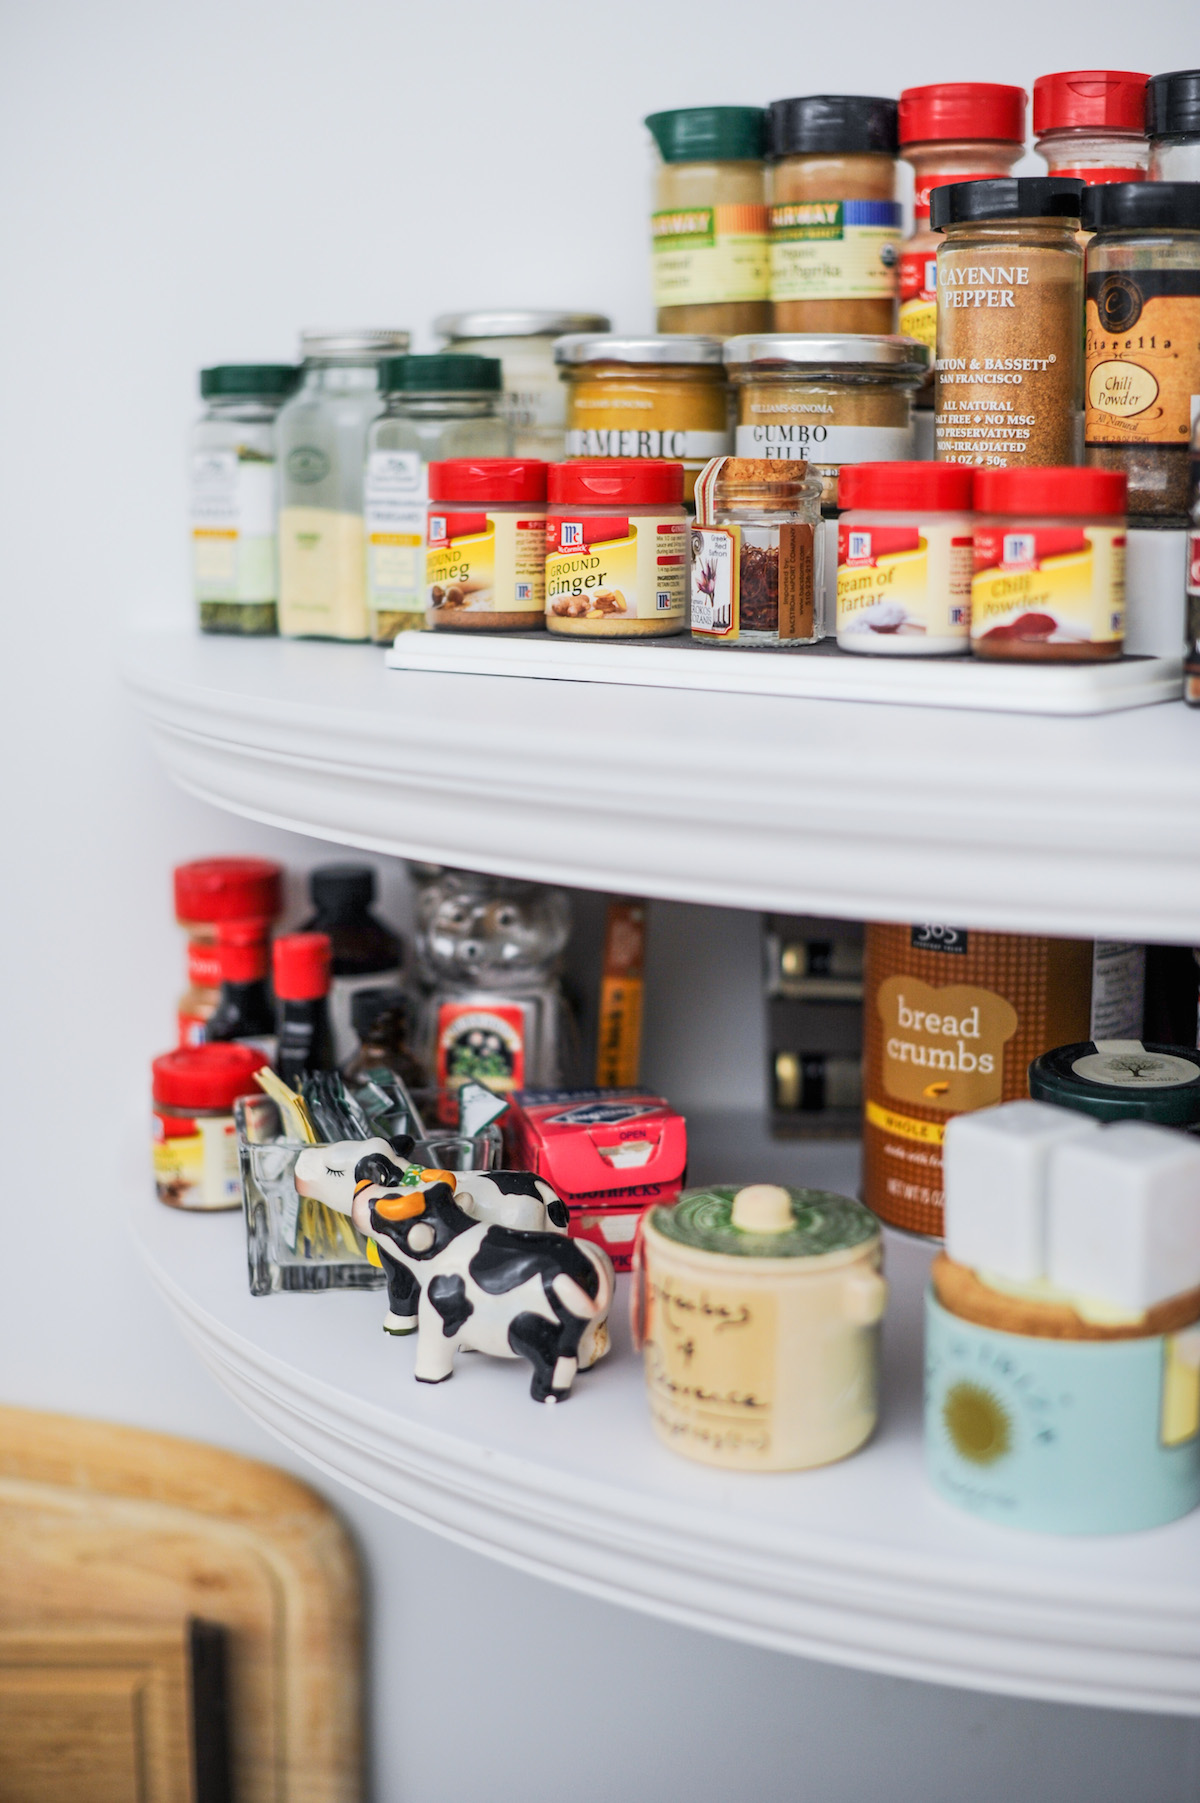 Fashionable Hostess Spice Rack